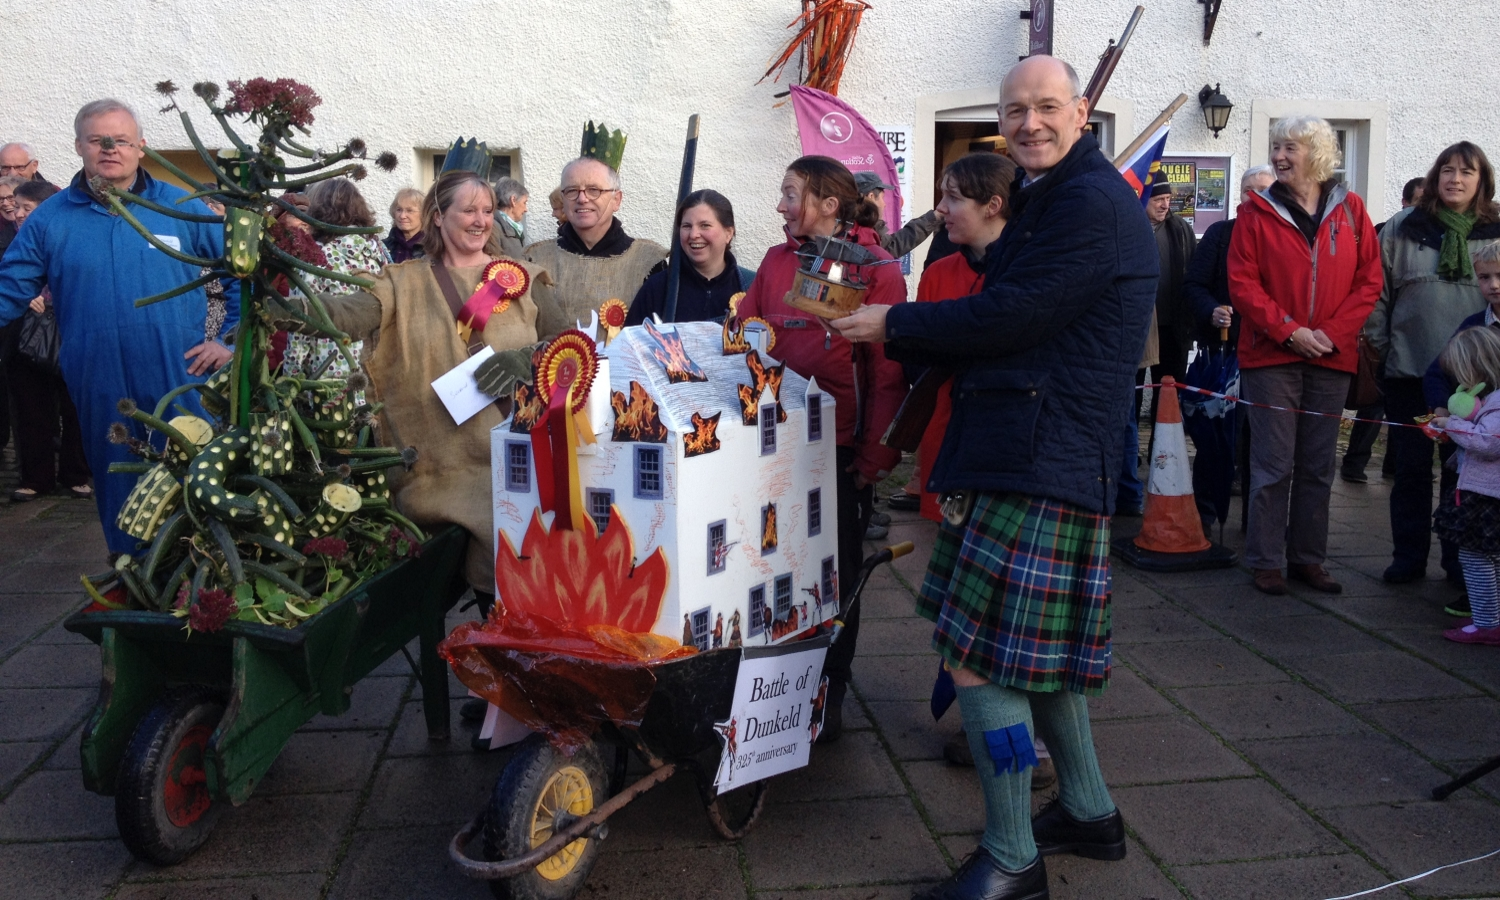 John Swinney with Decorated Wheelbarrows